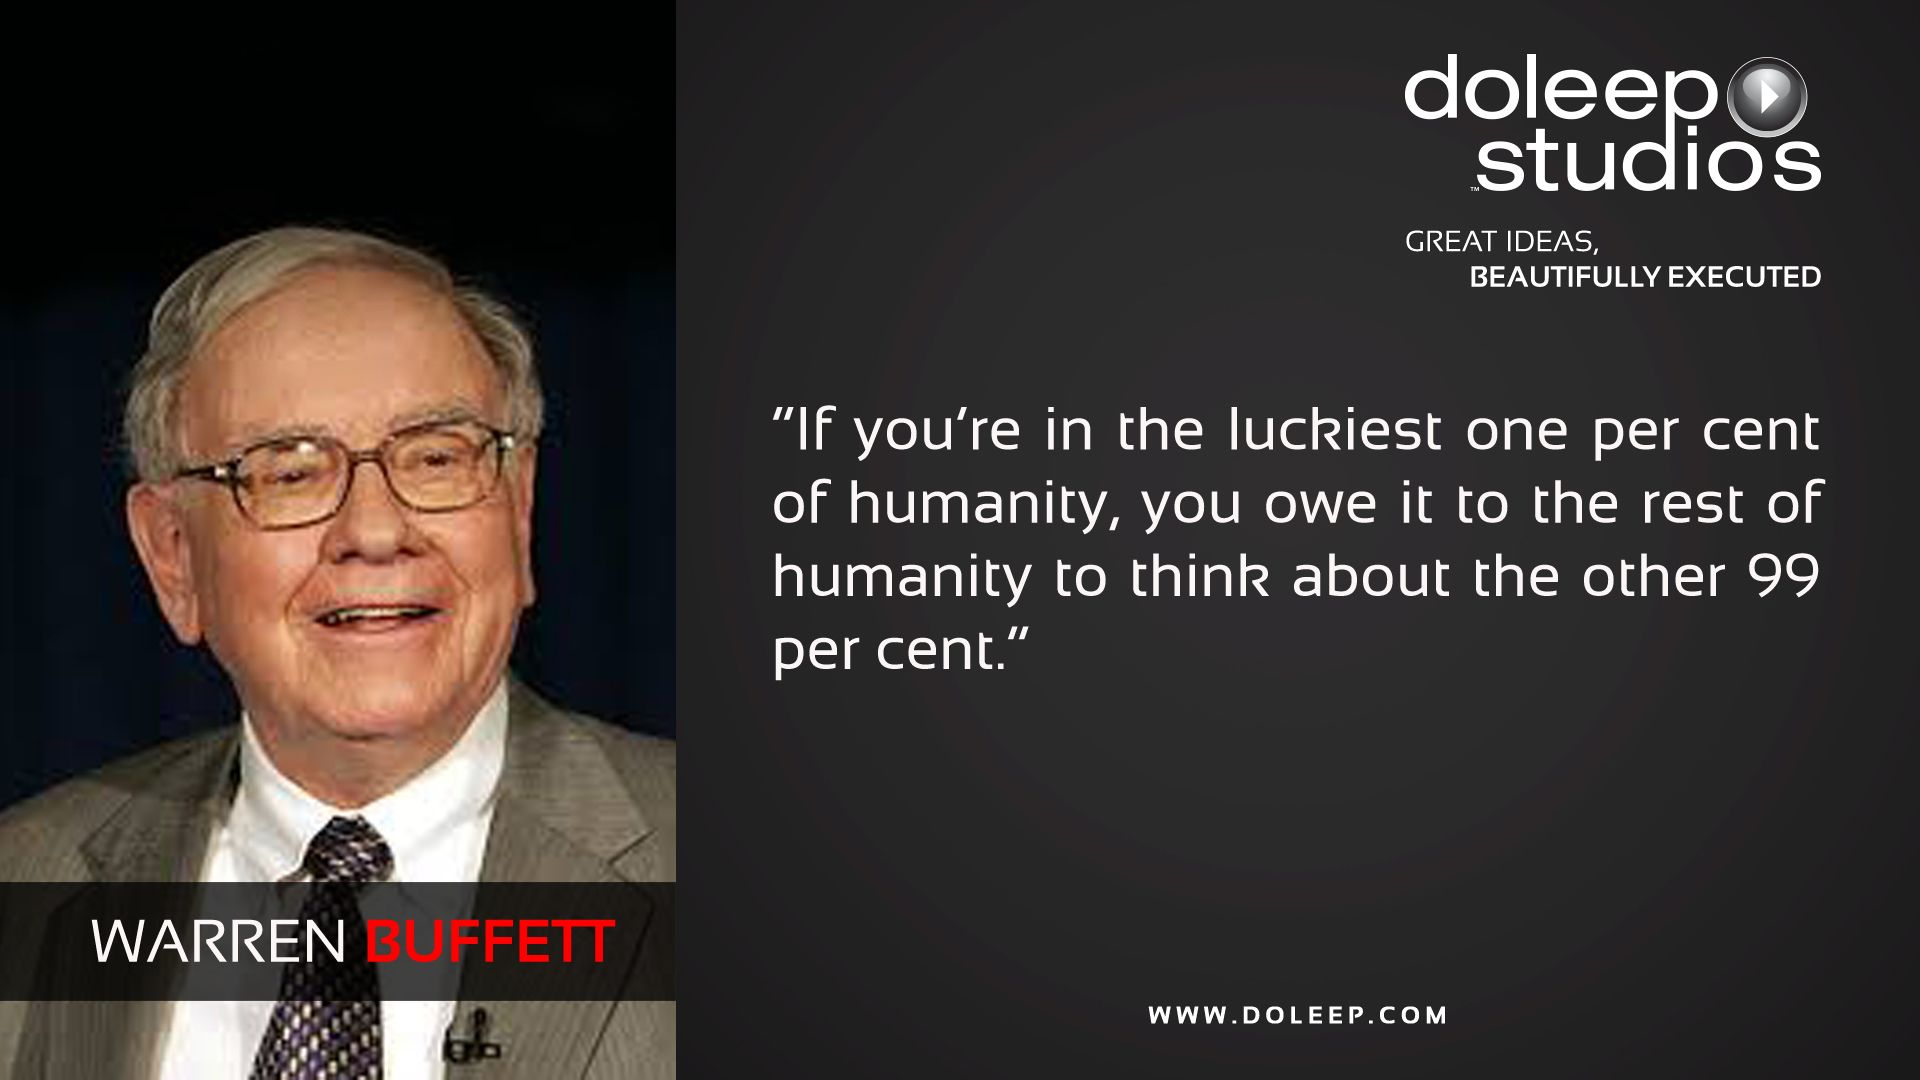 """If you're in the luckiest one per cent of humanity, you owe it to the rest of humanity to think about the other 99 per cent."" @DoleepStudios #business #entrepreneur #fortune #leadership #CEO #achievement #greatideas #quote #vision #foresight #success #quality #motivation #inspiration #inspirationalquotes #domore #dubai #abudhabi #uae#sun #love #instatravel #traveler #tourism #colore #following #followback #followall #hair #fashion"